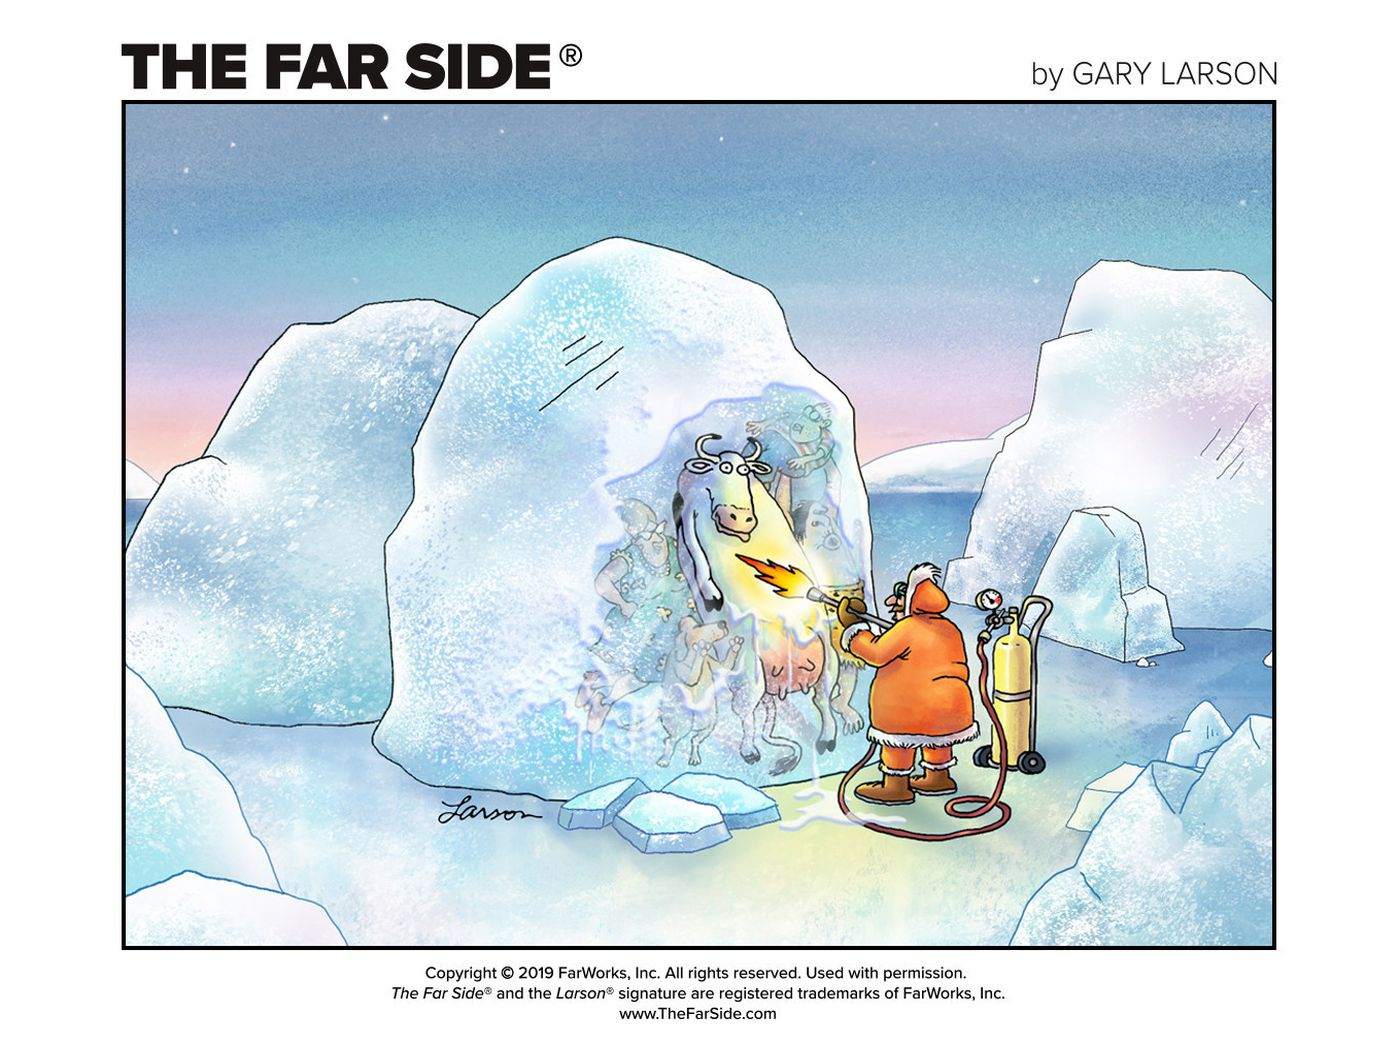 The Far Side Is Officially Online For The First Time With New Comics To Come The Verge